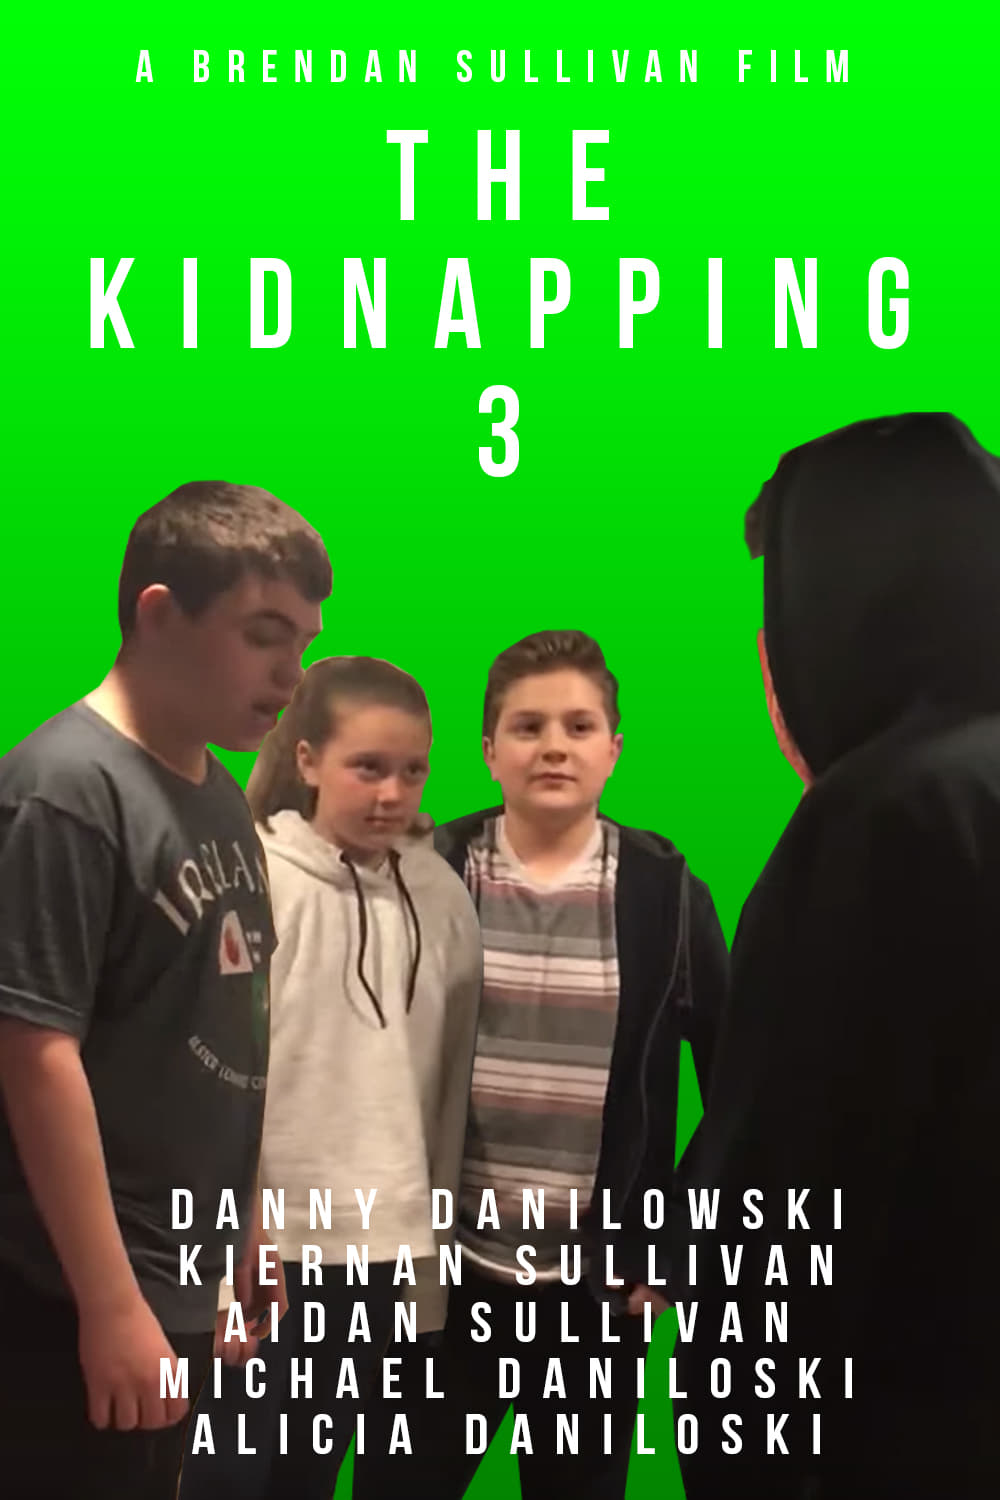 The Kidnapping 3 (2018)